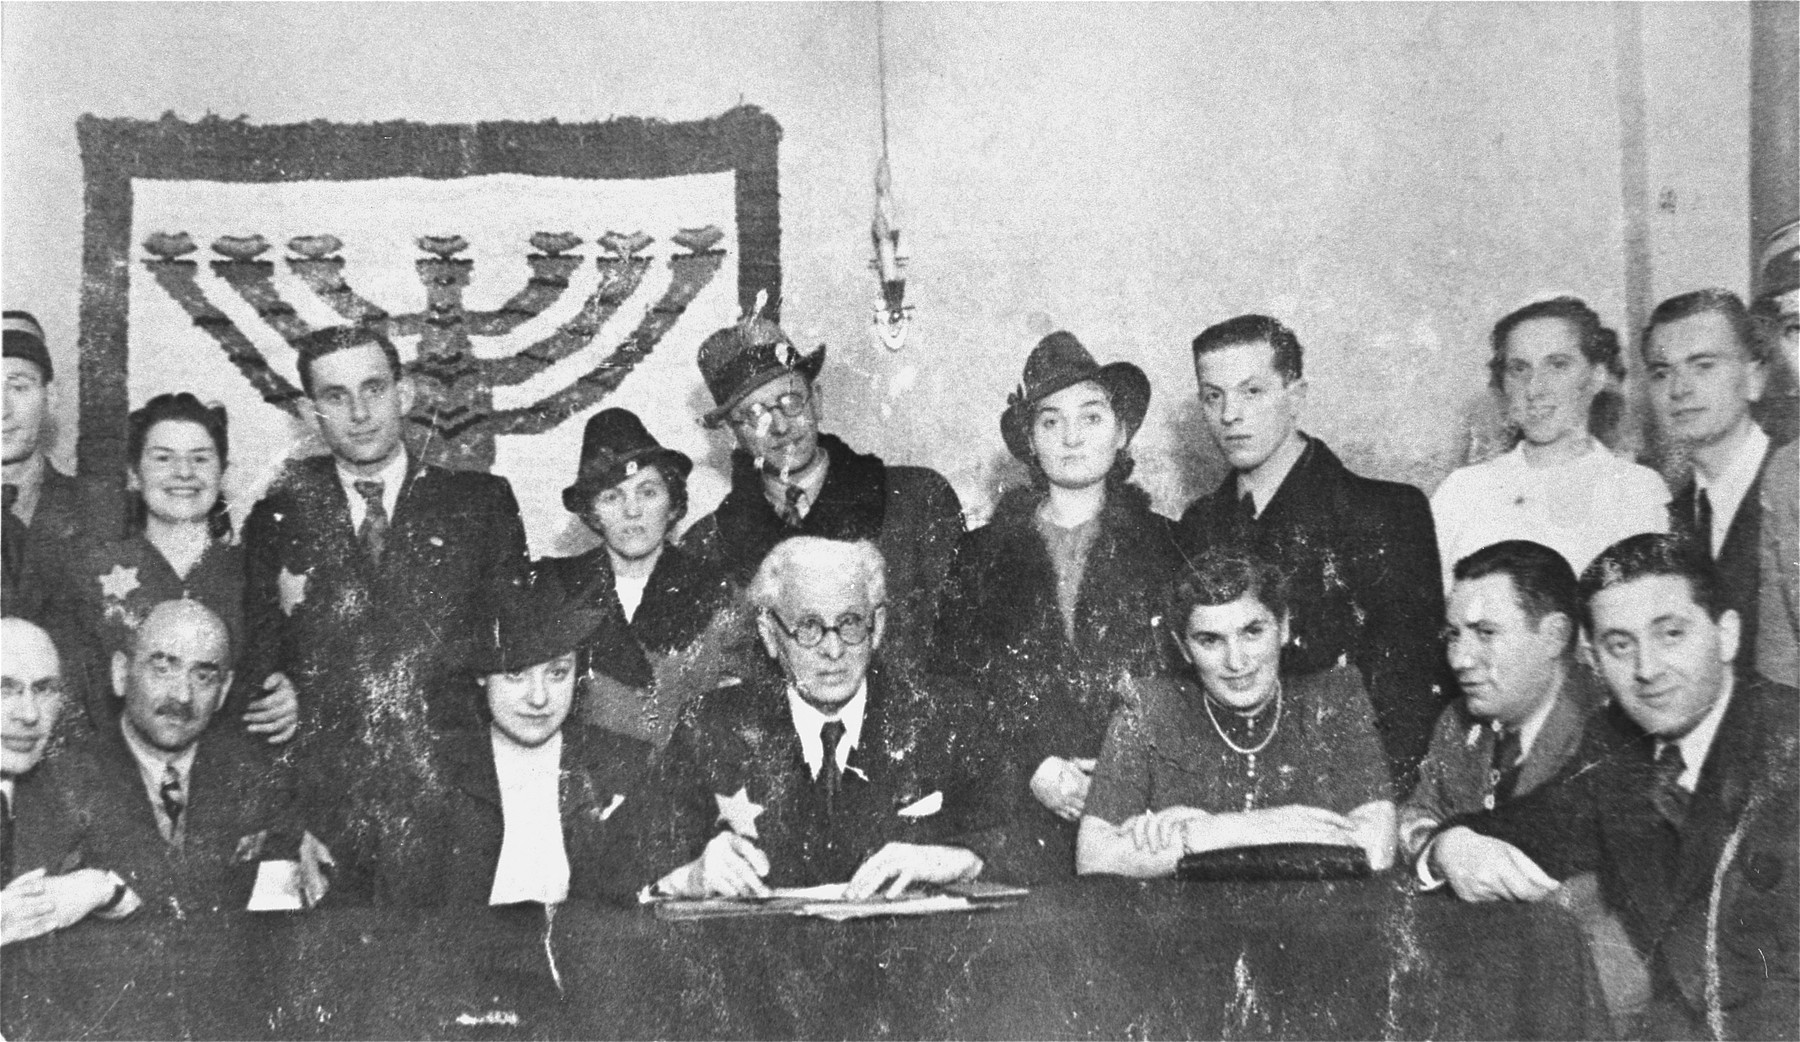 Jewish council chairman Mordechai Chaim Rumkowksi (seated in the center), poses with members of the council and four couples at a joint wedding celebration in the Lodz ghetto.  Pictured in the front row from right to left are: Aron Jakubowicz, David Gertler, Regina Jakubowicz, Mordechai Chaim Rumkowski, Dora Fuks, Leon Rosenblat and David Warszawski.  Behind them stand Robert and Sala Schick  (the bride in the white dress, on the right).